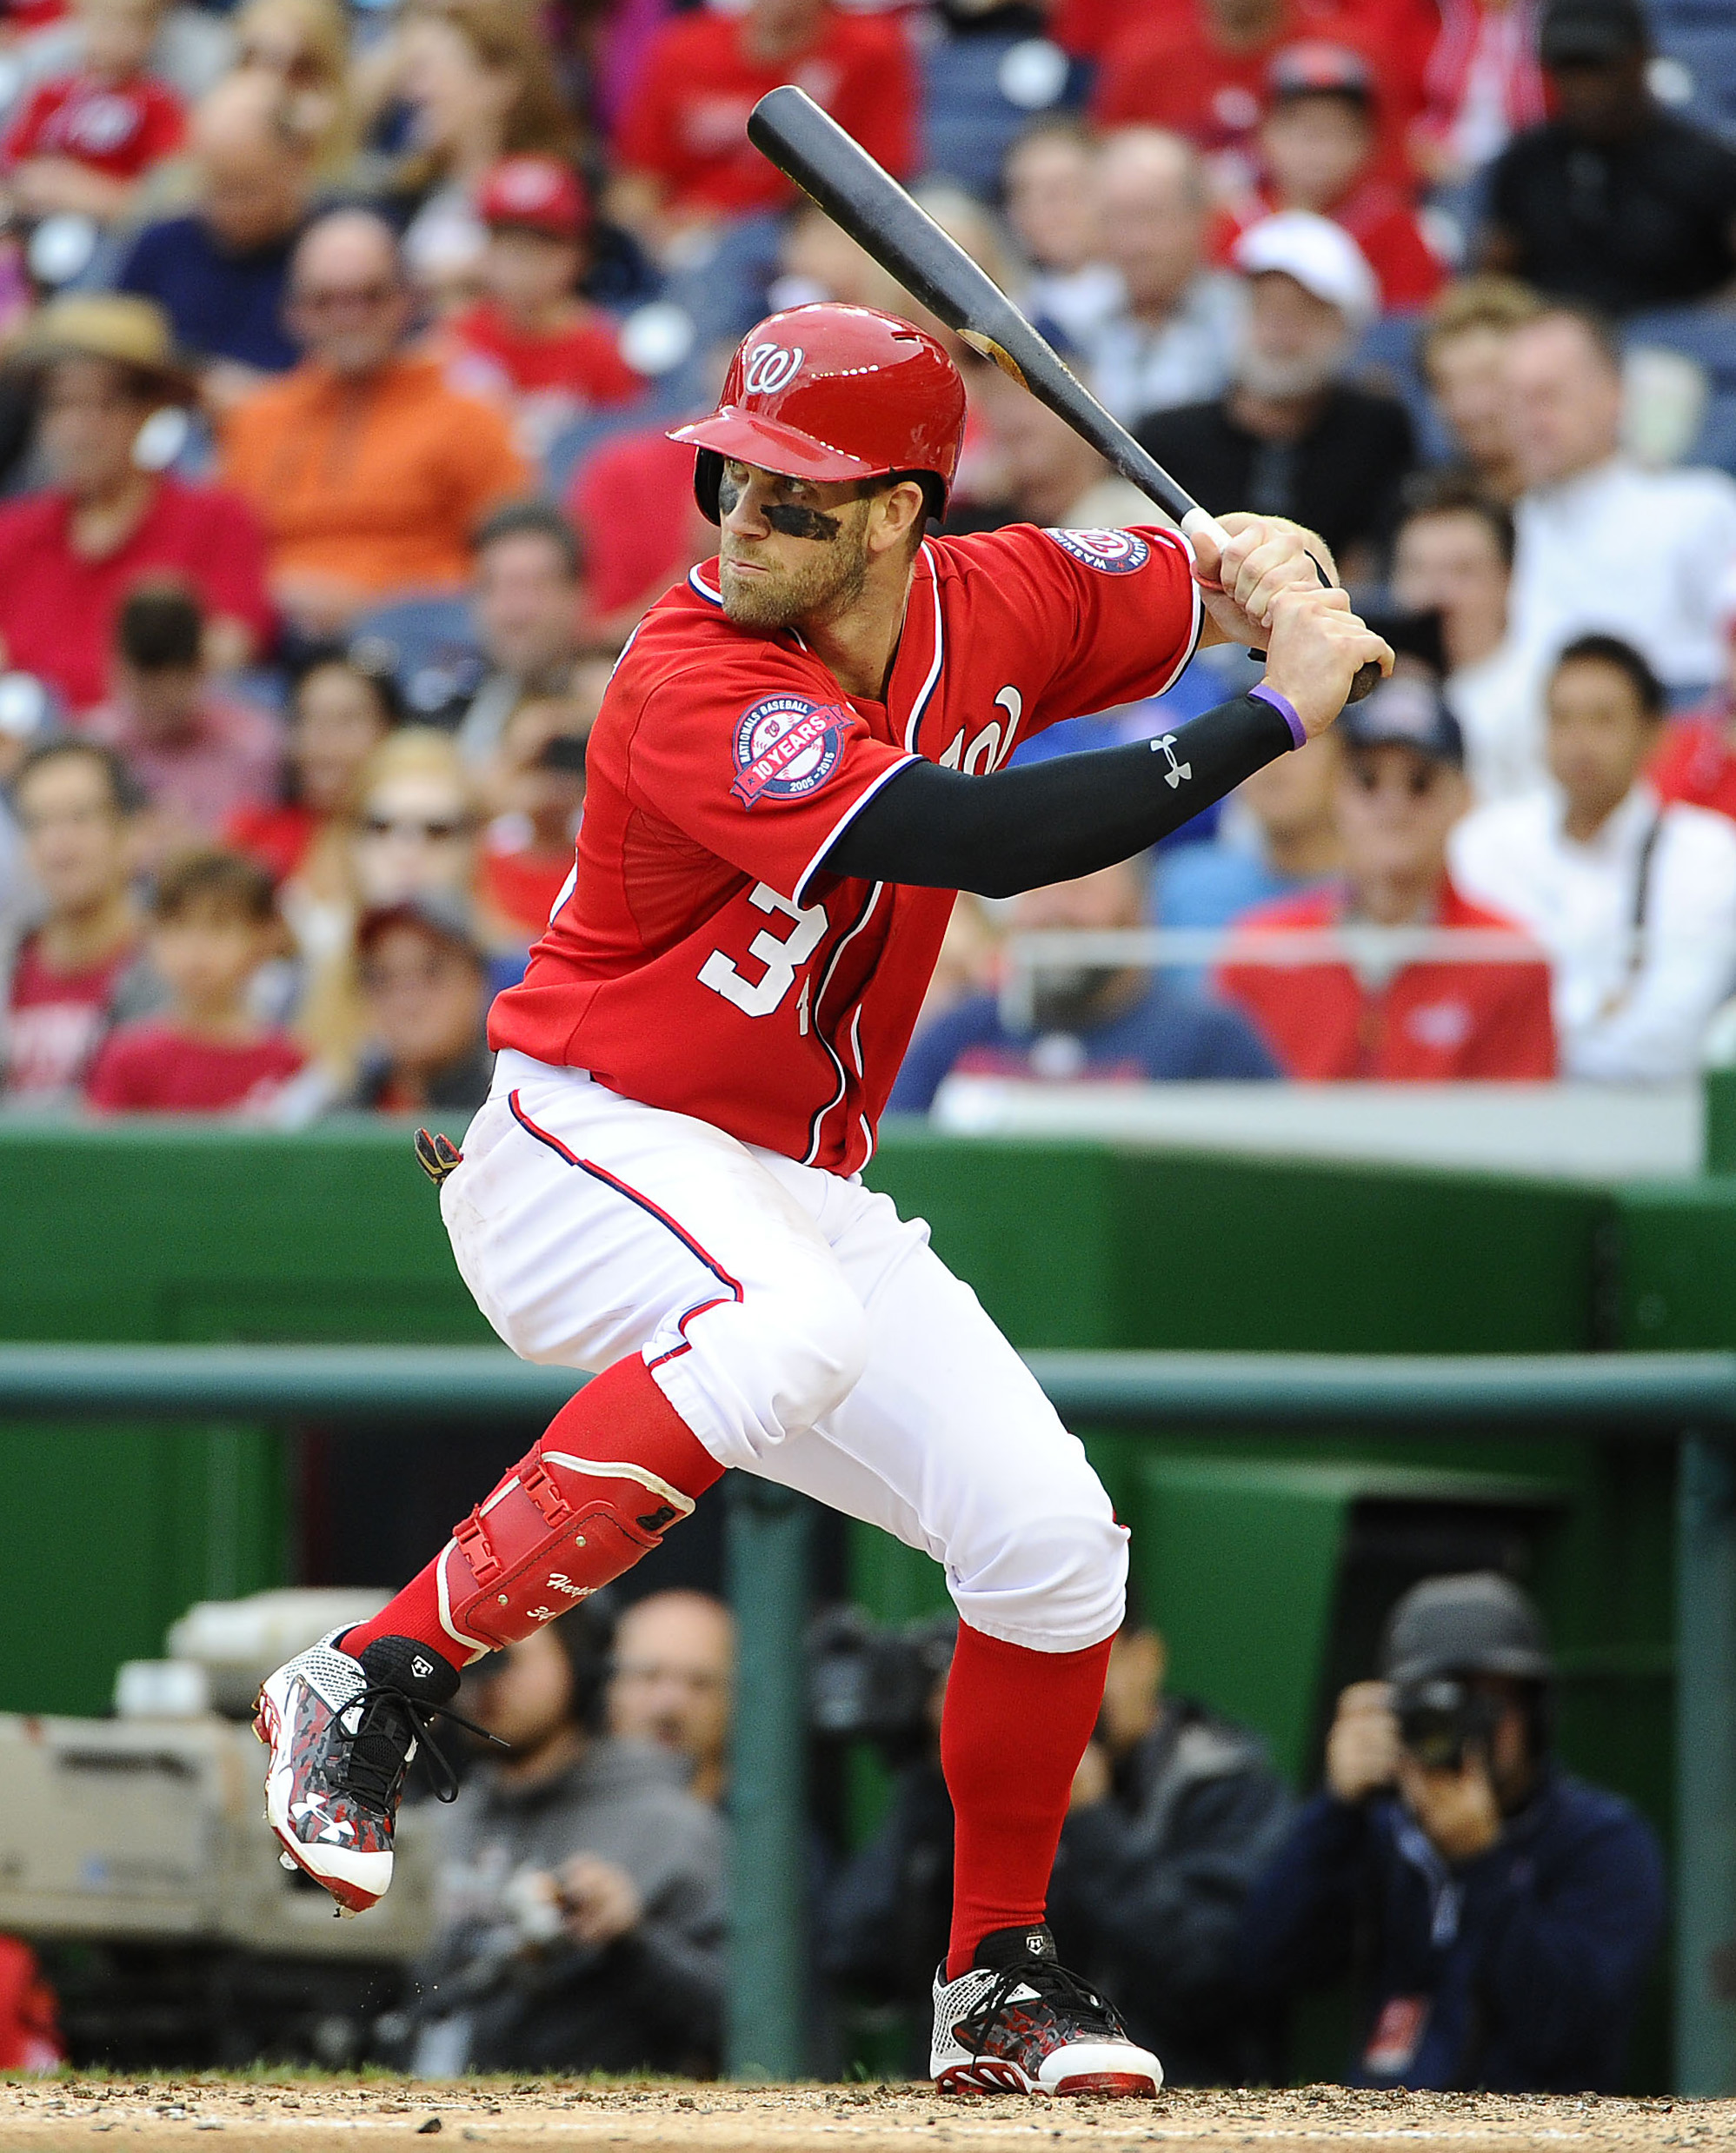 Bryce Harper was among the three NL Silver Slugger Award winners in the outfield.